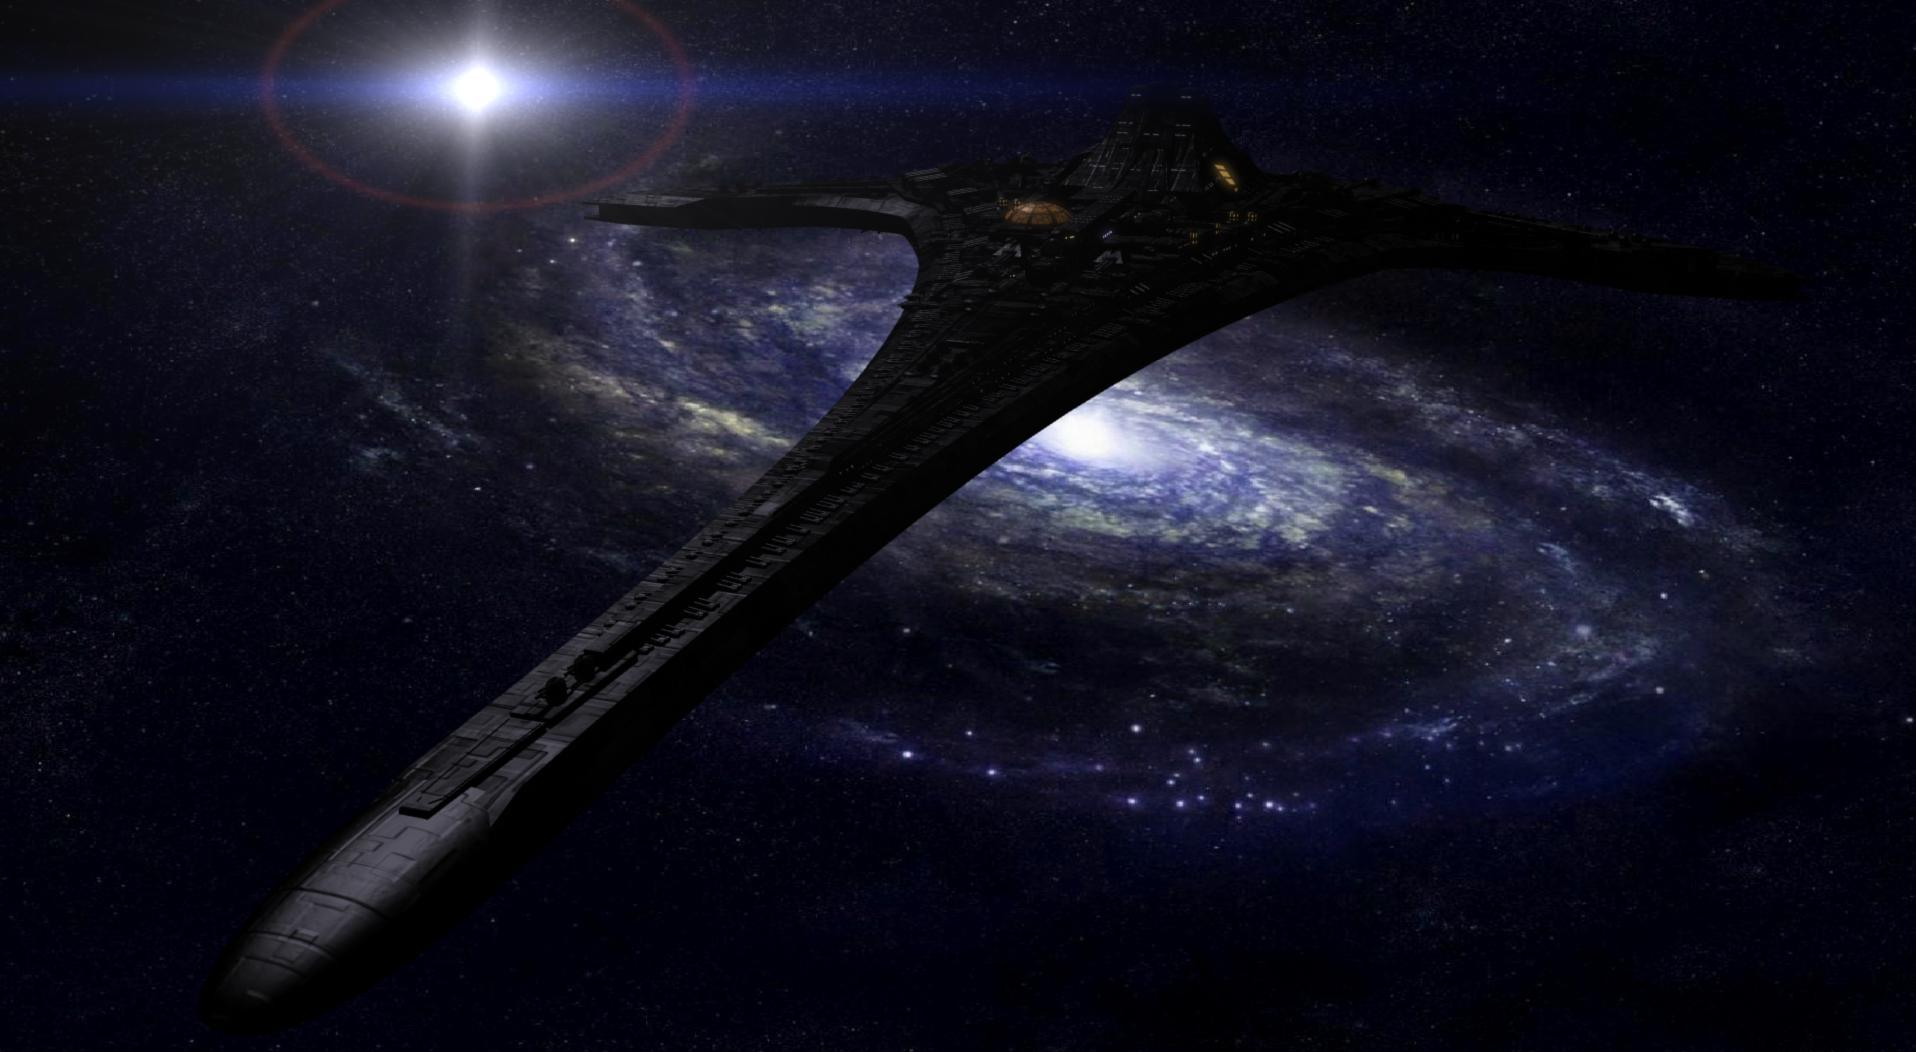 stargate wallpaper universe space - photo #10